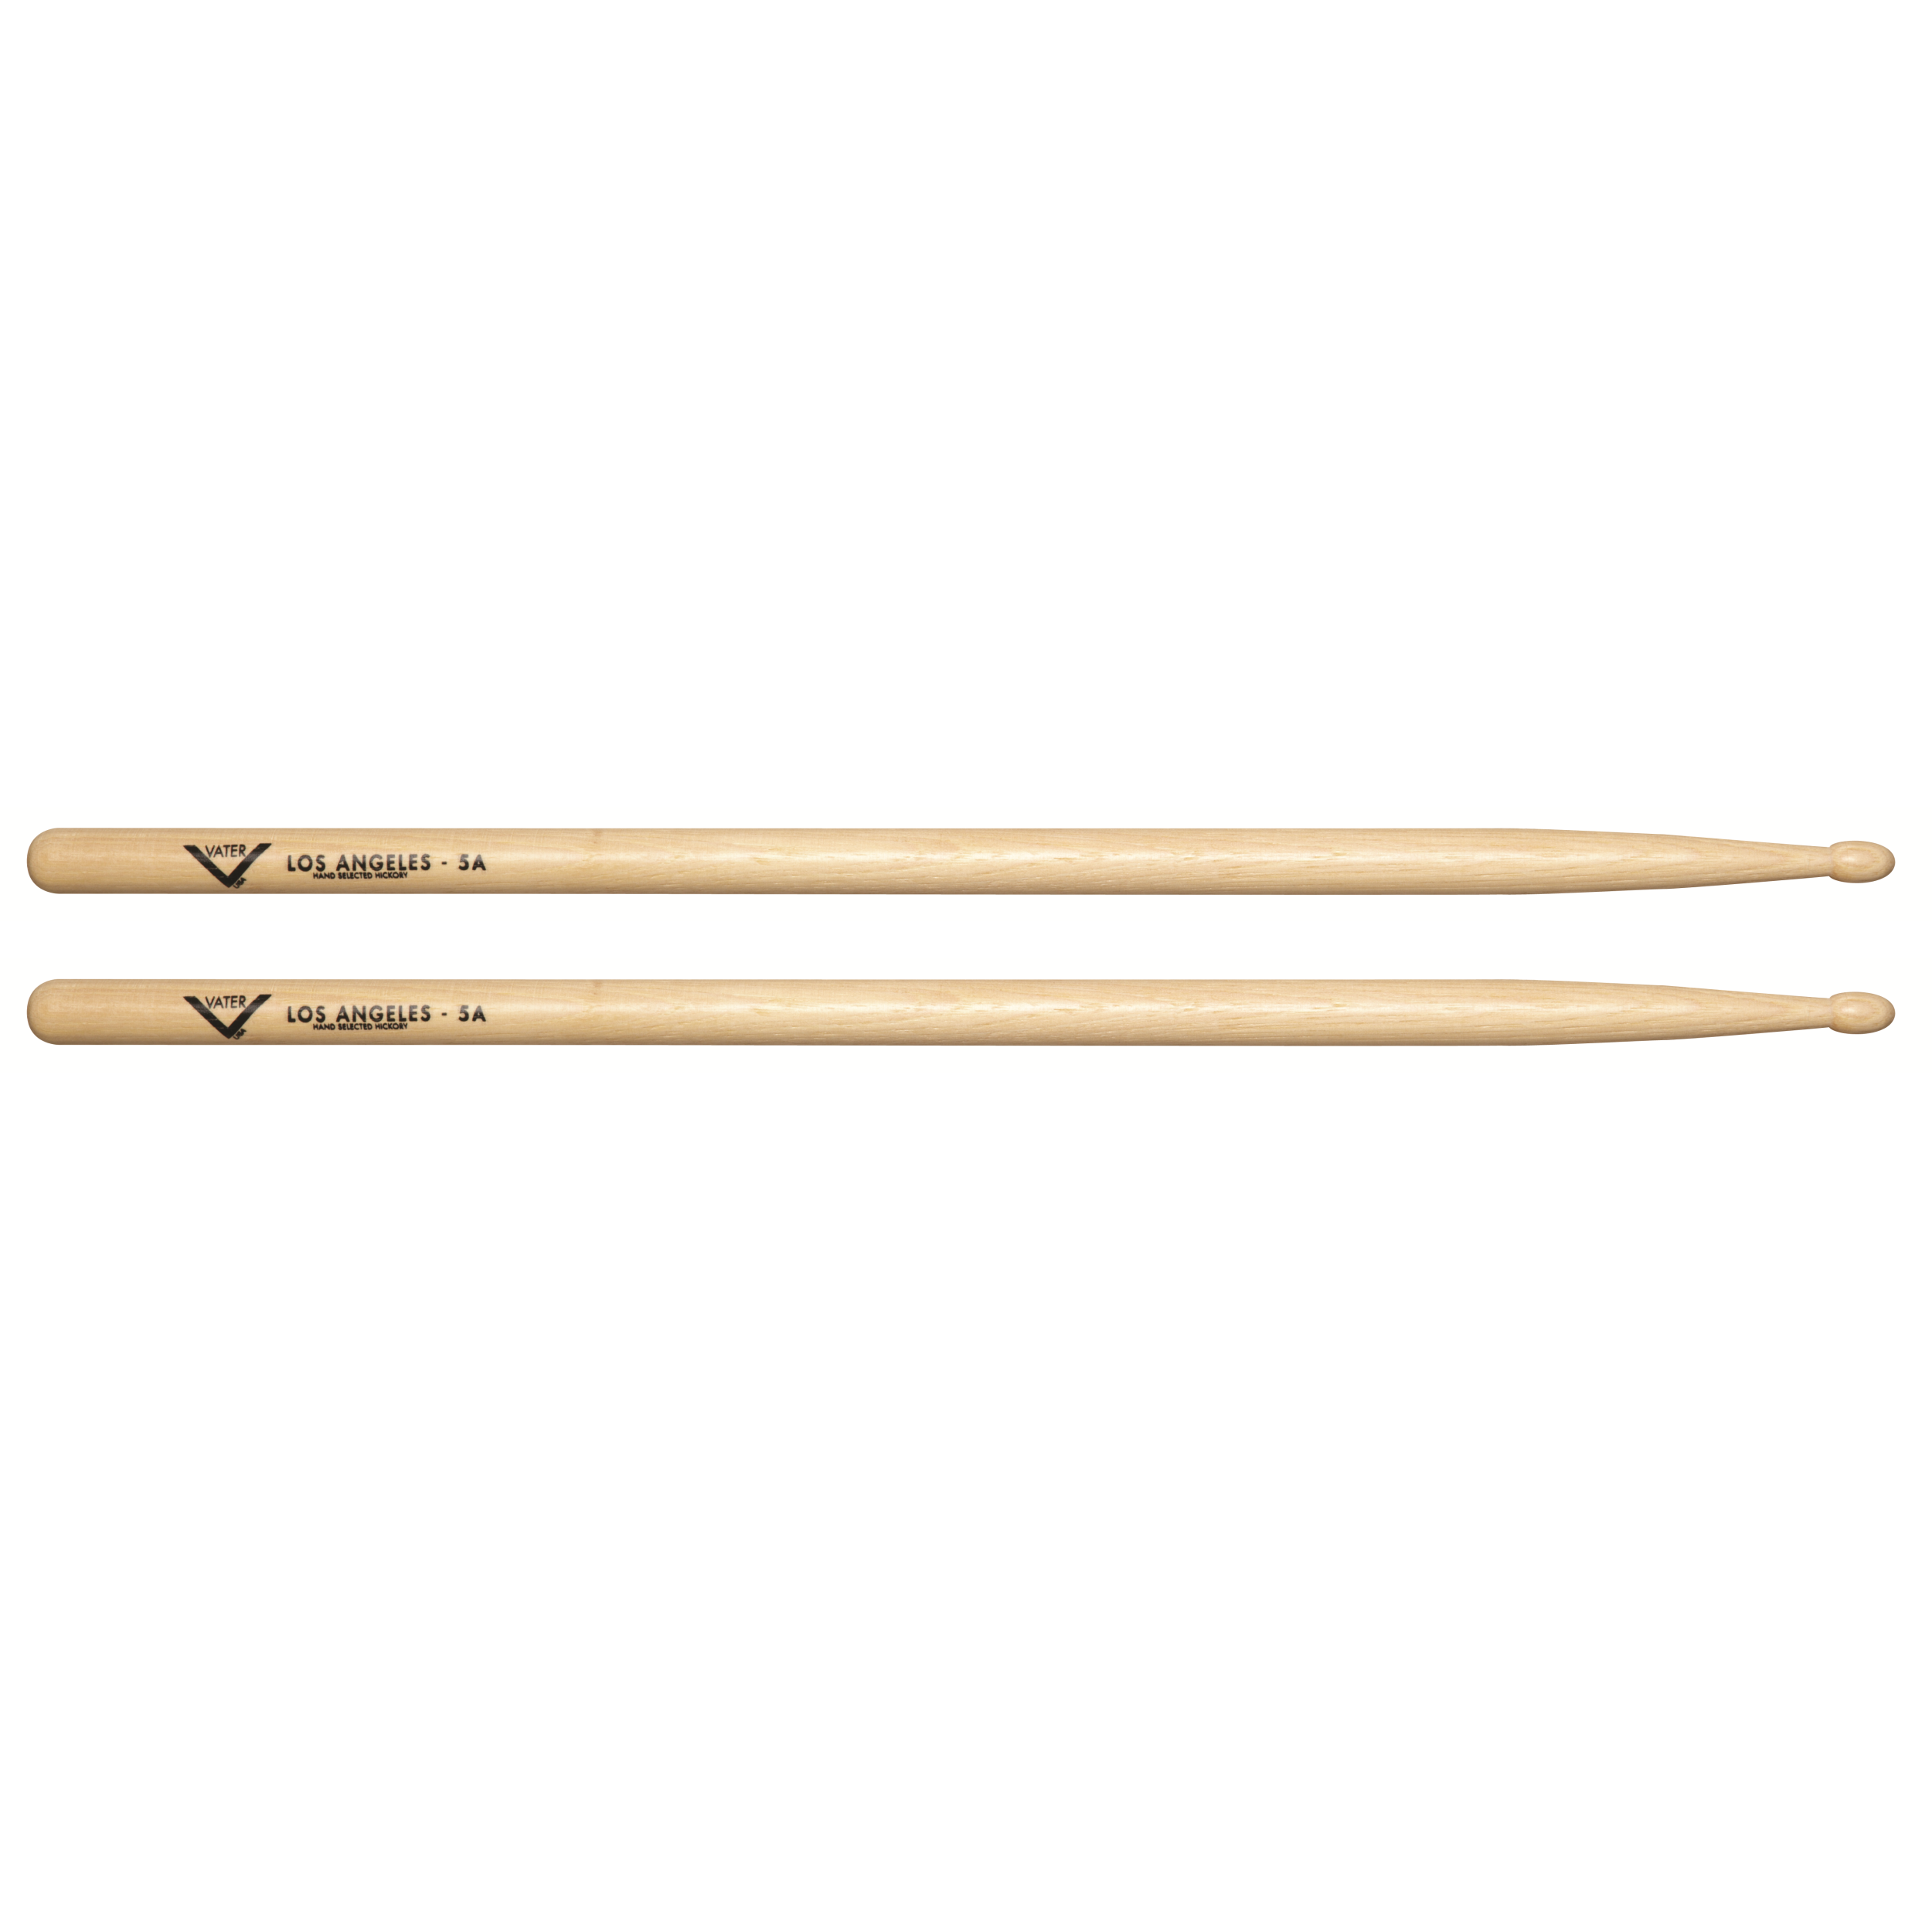 vater vh5aw los angeles 5a wood tip hickory drum sticks pair musical instruments. Black Bedroom Furniture Sets. Home Design Ideas